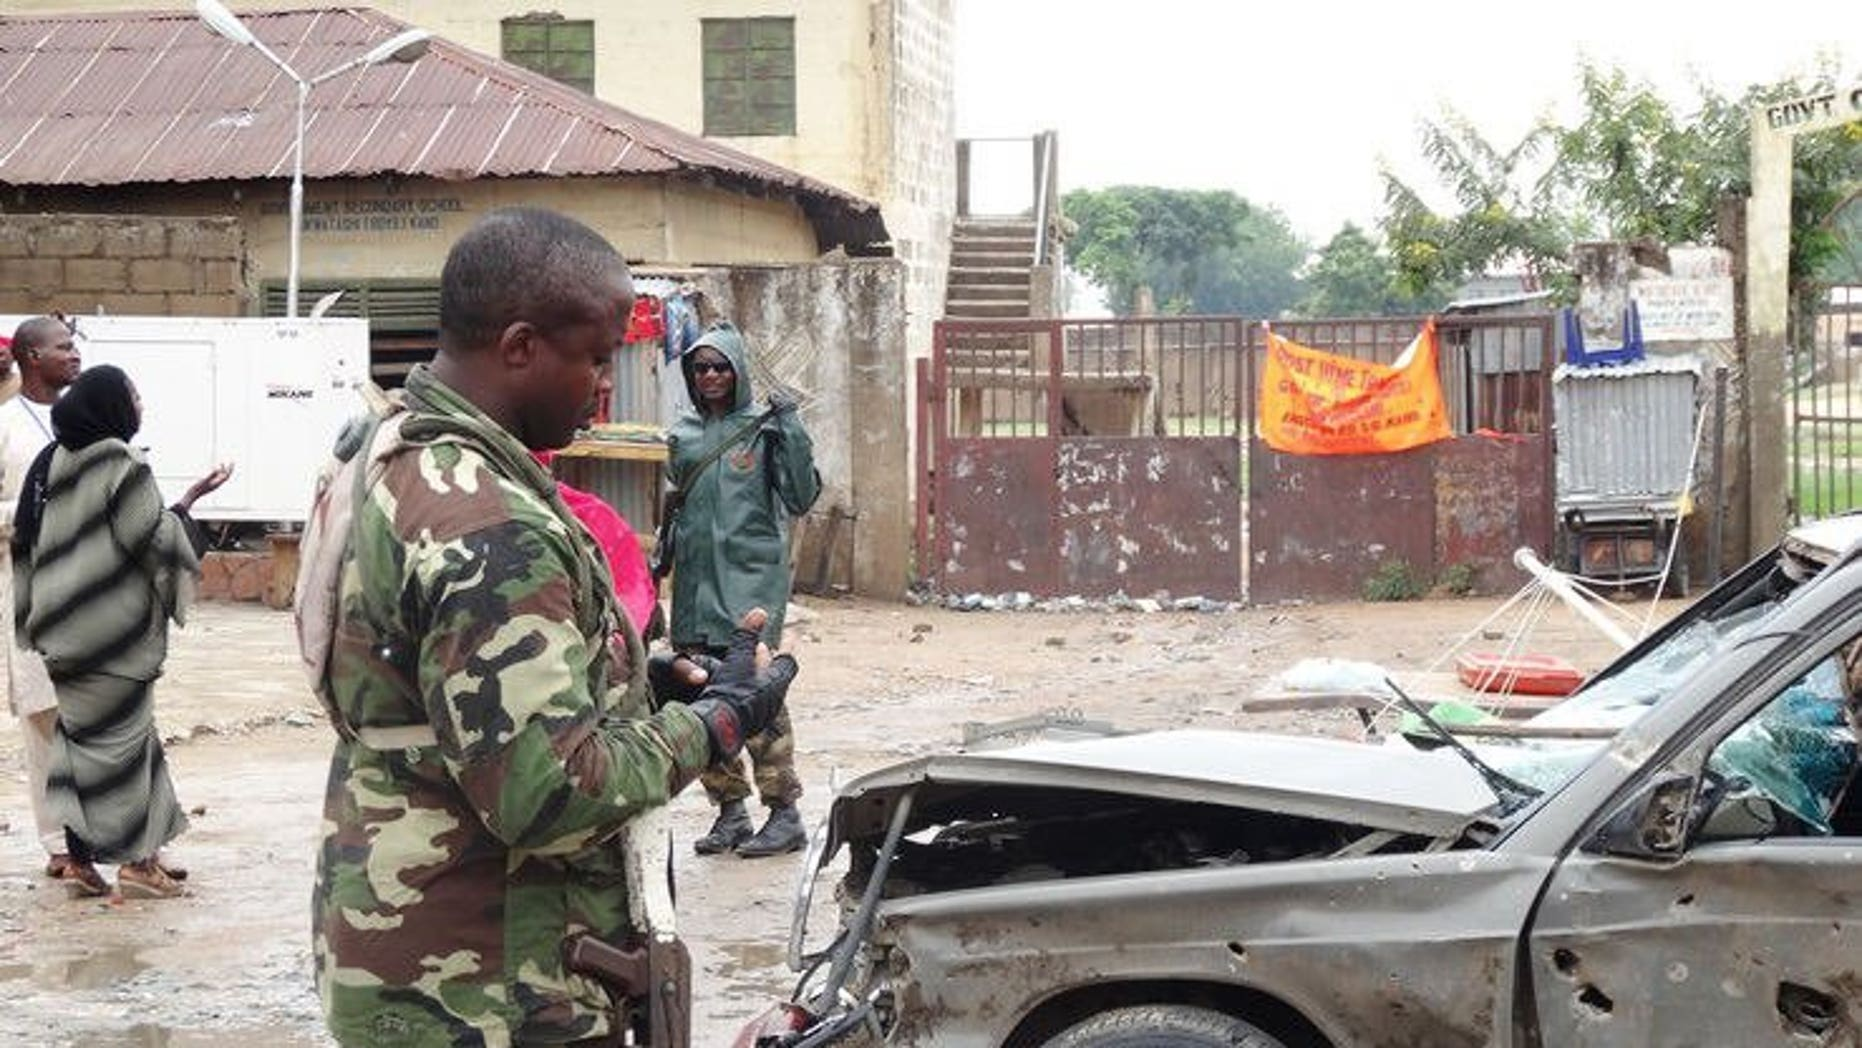 A soldier stands near a damaged car at a scene of an explosion in the Sabon Gari neighbourhood of Kano on July 30, 2013. Two Lebanese suspects alleged to be members of Hezbollah and on trial in Nigeria on terrorism charges told a court Monday they were harshly interrogated by Israeli agents after their arrests.